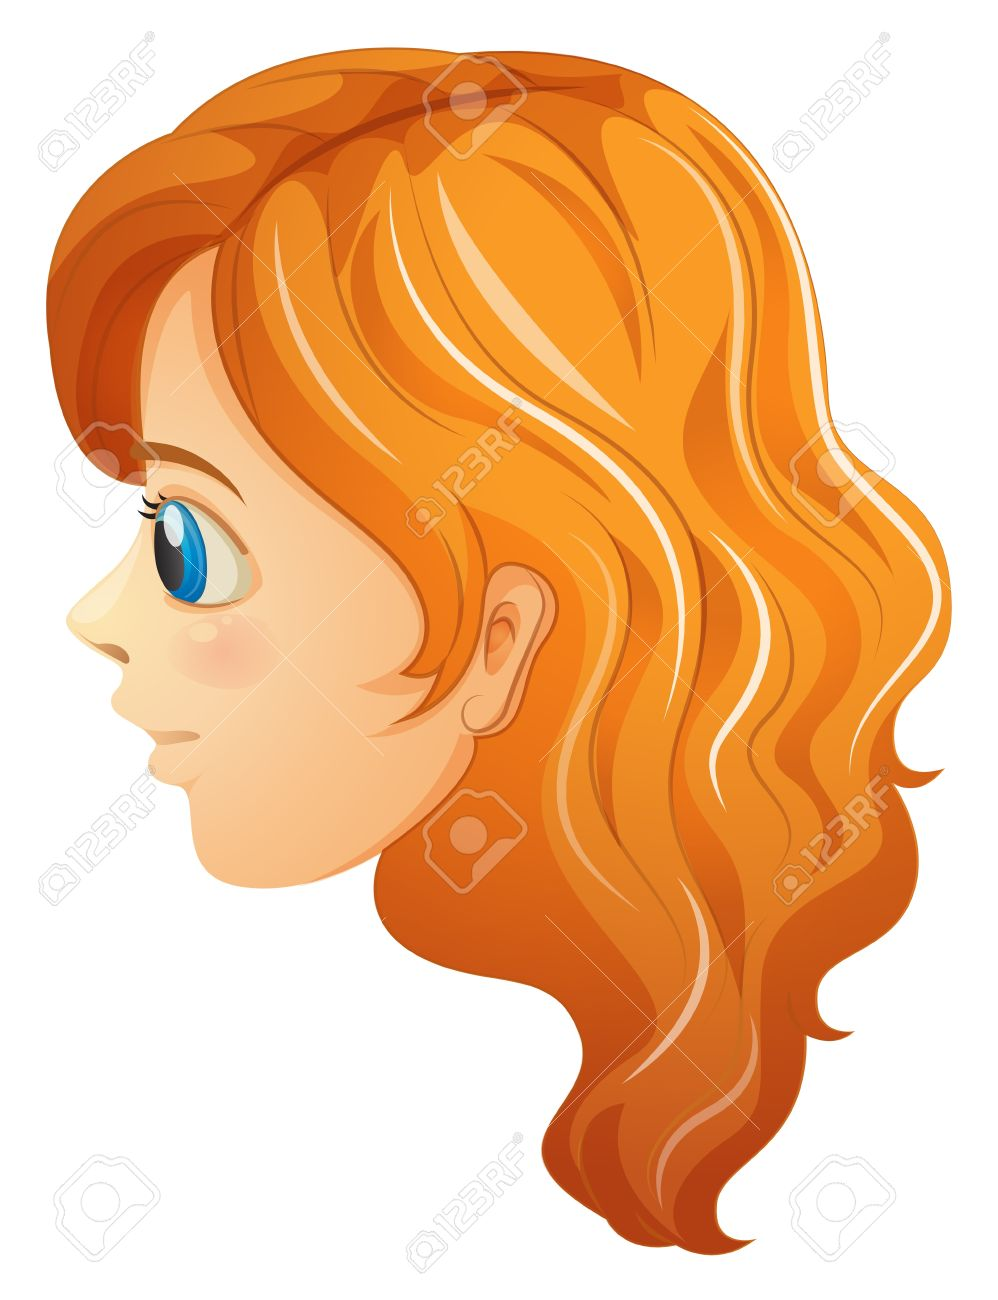 4,432 Woman Side View Stock Vector Illustration And Royalty Free.